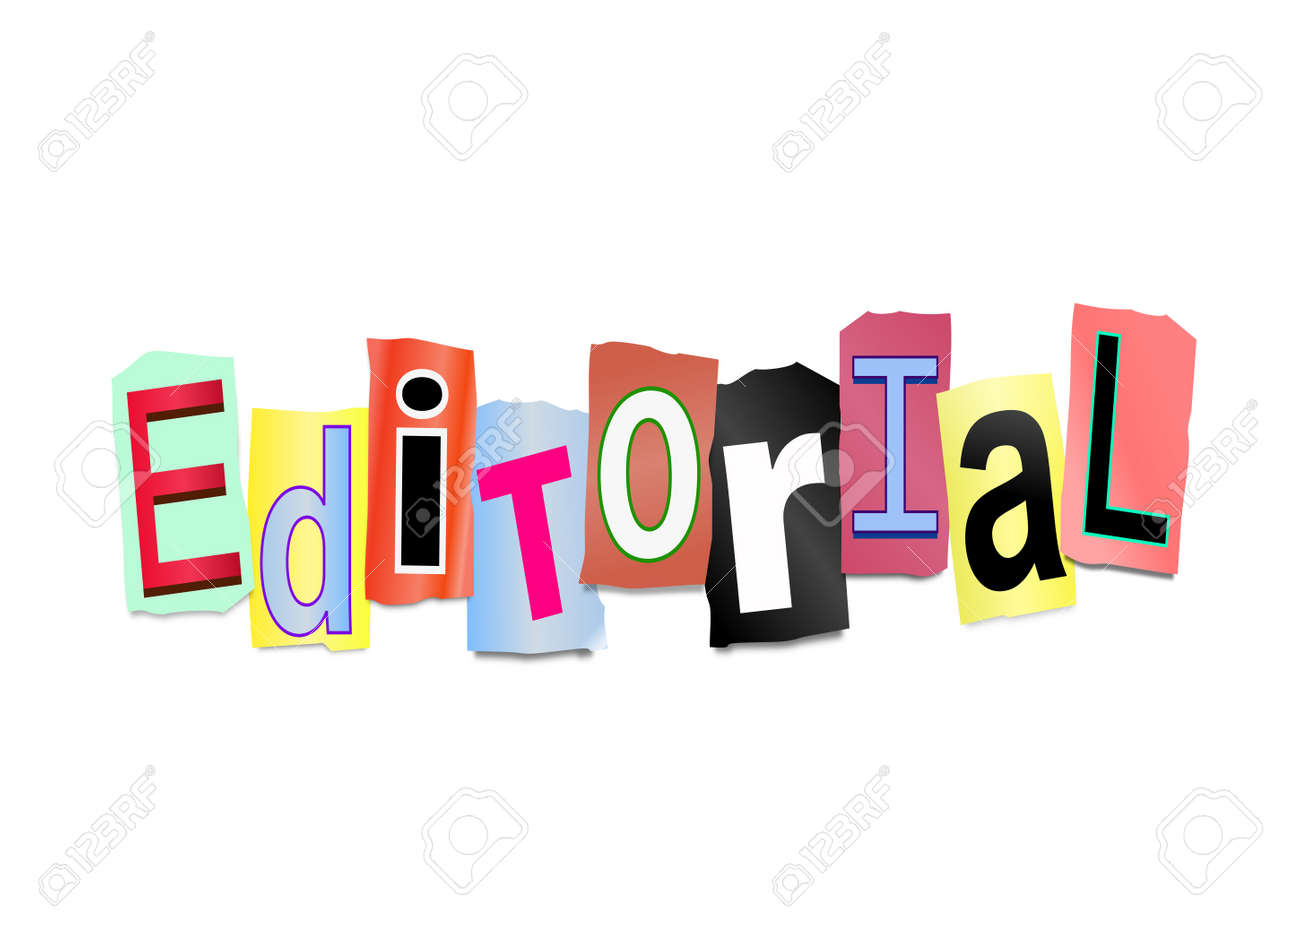 illustration illustration depicting cutout printed letters arranged to form the word editorial